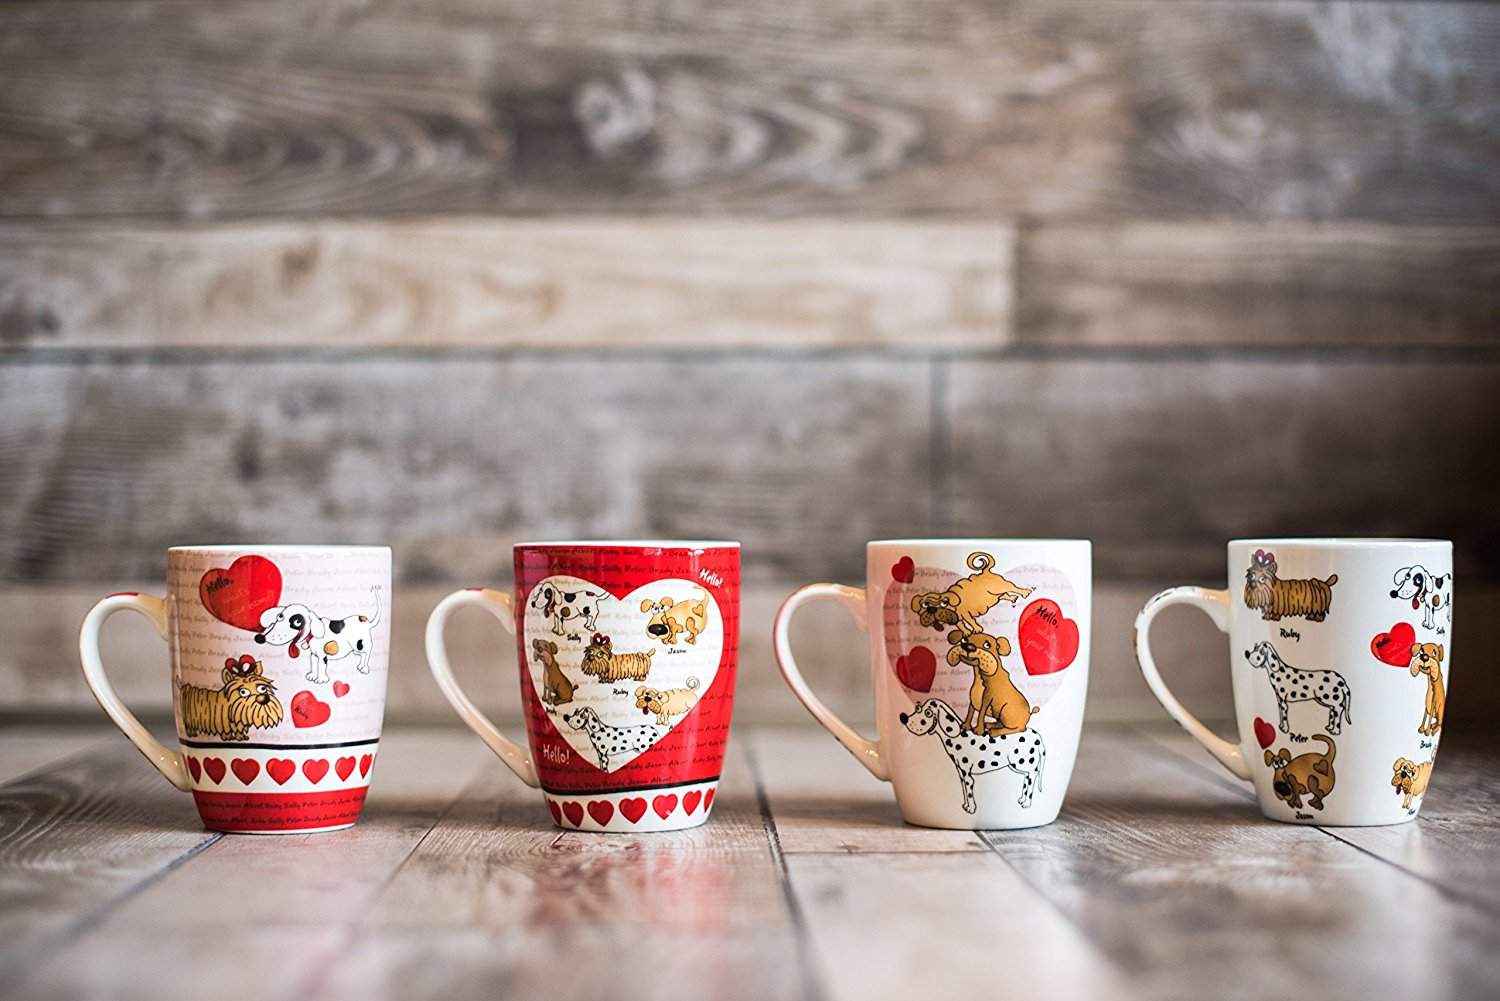 All For You New Bone China Mug with Gift Box-Puppy Dog, Heart, Love-Set of 4, 12 Oz, Gift... by All For You Home